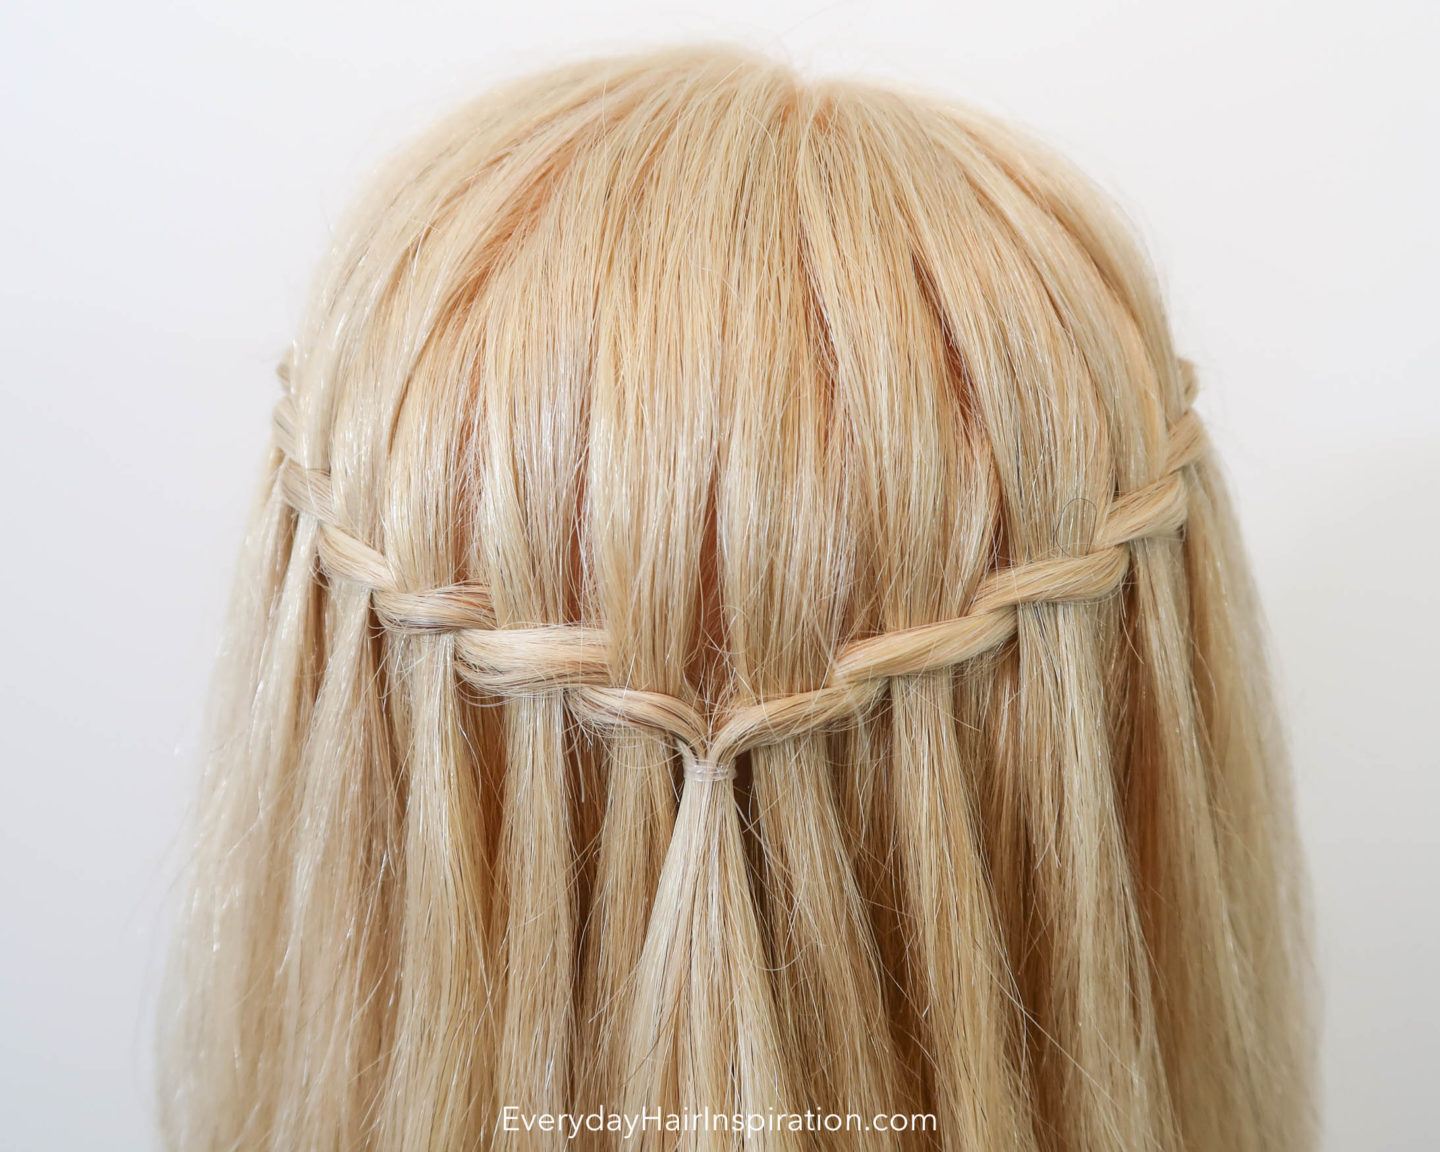 Blonde Hairdresser doll with a twisted waterfall braid in the hair, closeup seen from the back